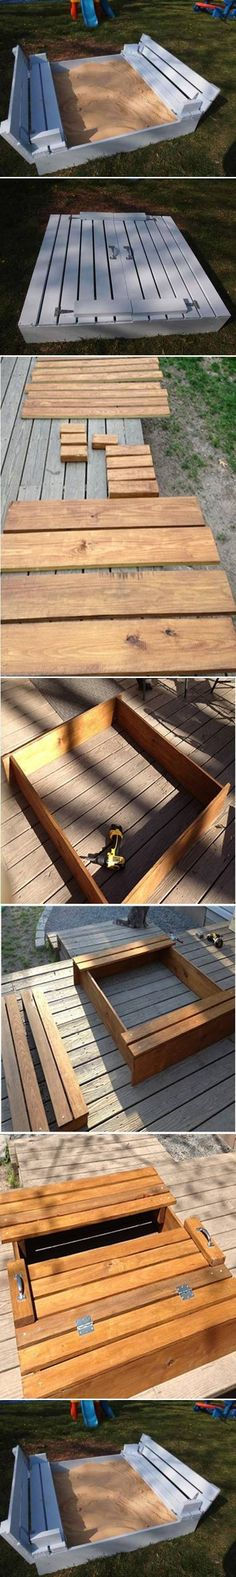 diy sandbox for kids jaxen sandkasten garten sandkasten bauen. Black Bedroom Furniture Sets. Home Design Ideas